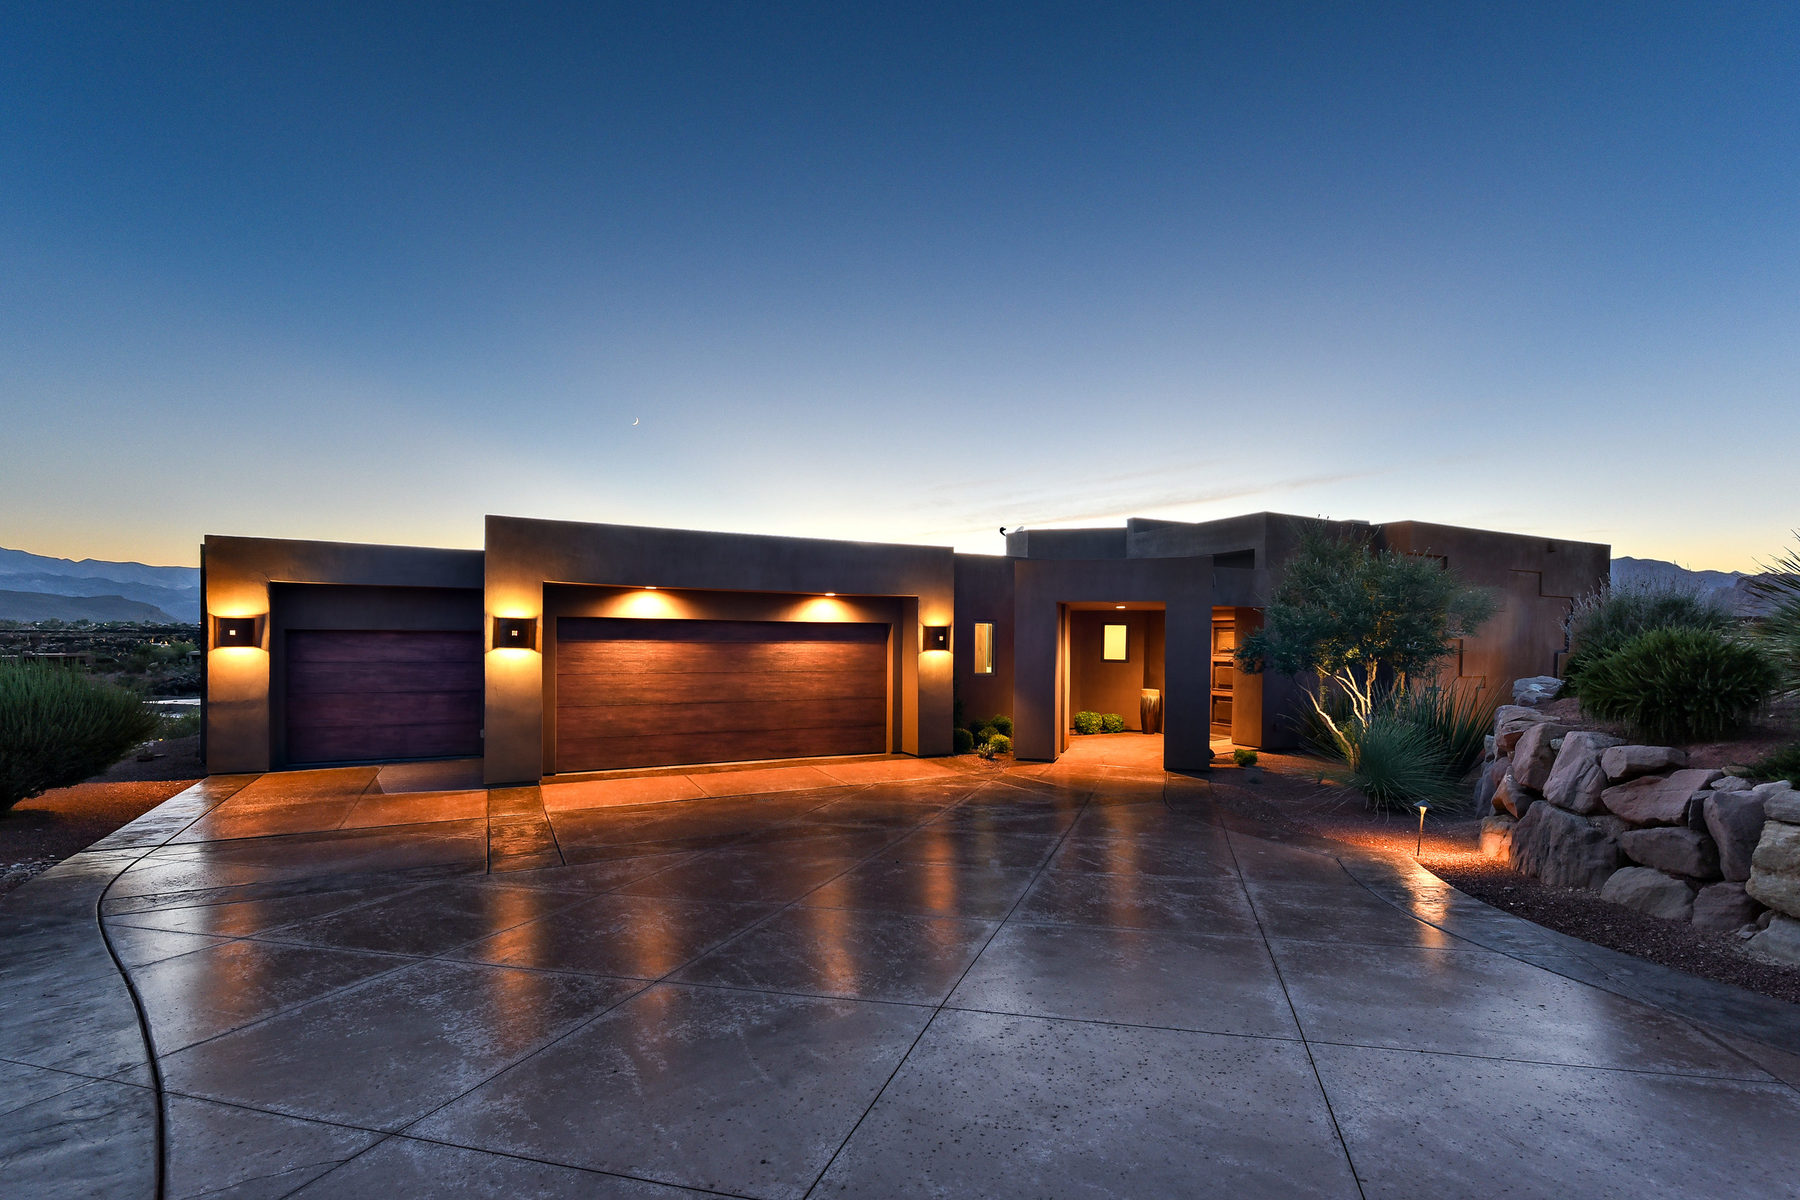 Villa per Vendita alle ore Timeless Contemporary Retreat 2411 Tavimaus Cir St. George, Utah, 84770 Stati Uniti